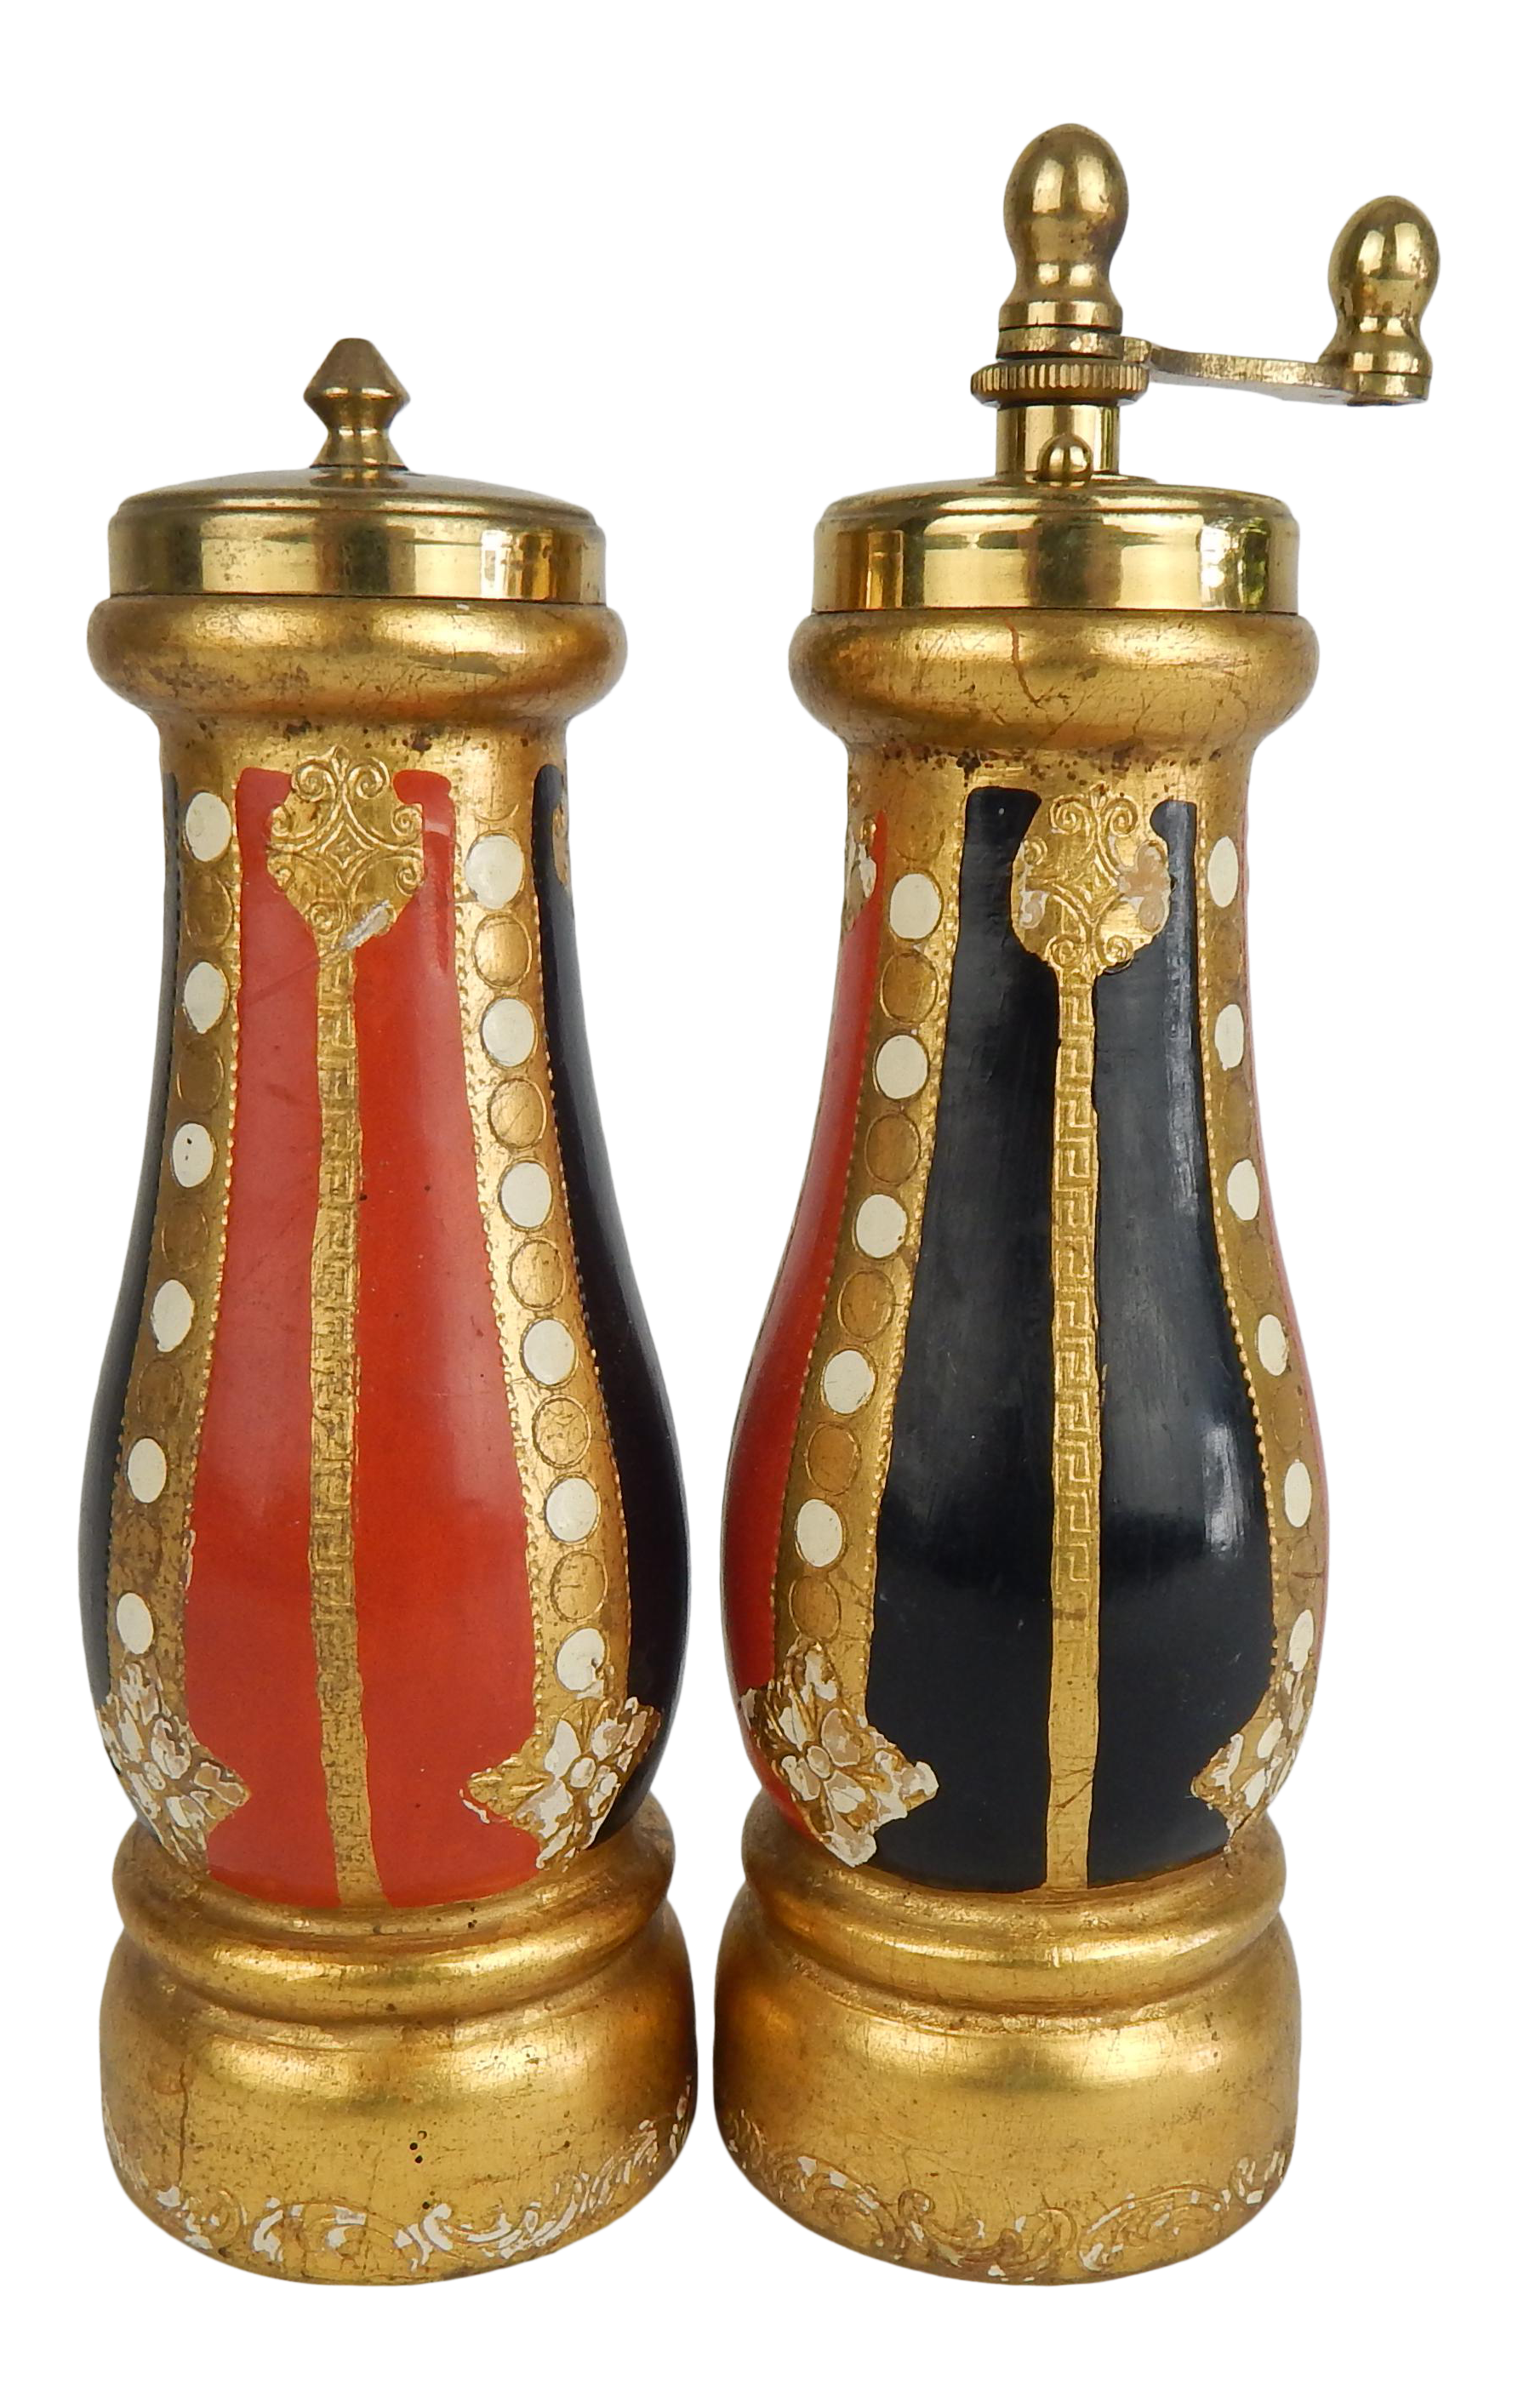 7\u201d shakers wood and brass serving Morethebuckles Vintage Brass and Wood Salt and Pepper Shakers Rare vintage shakers